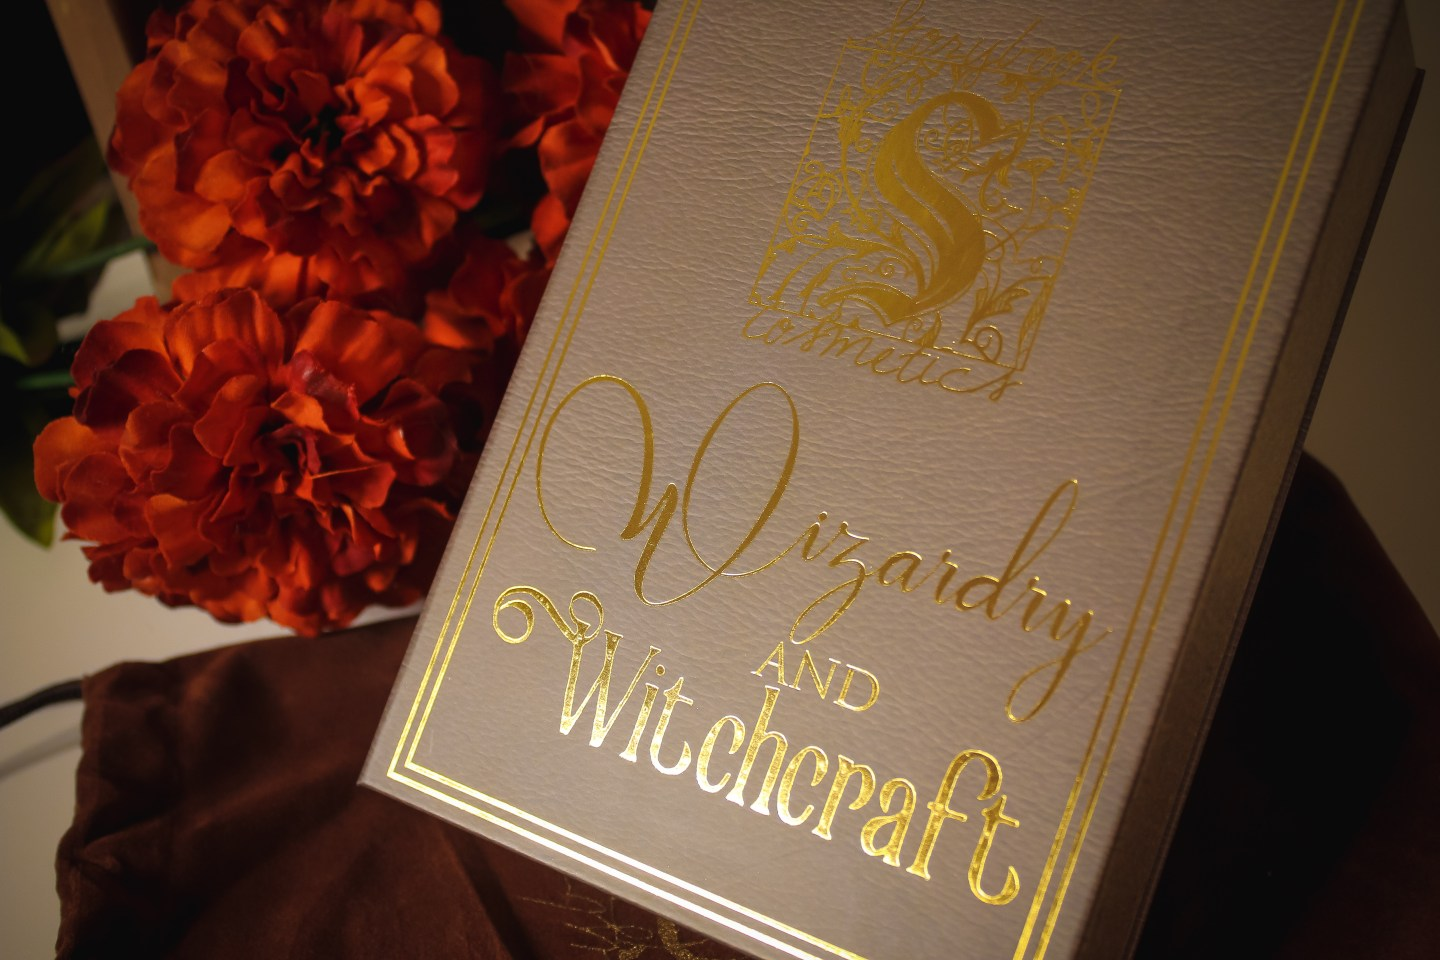 Storybook Cosmetics Wizardry and Witchcraft Palette 2